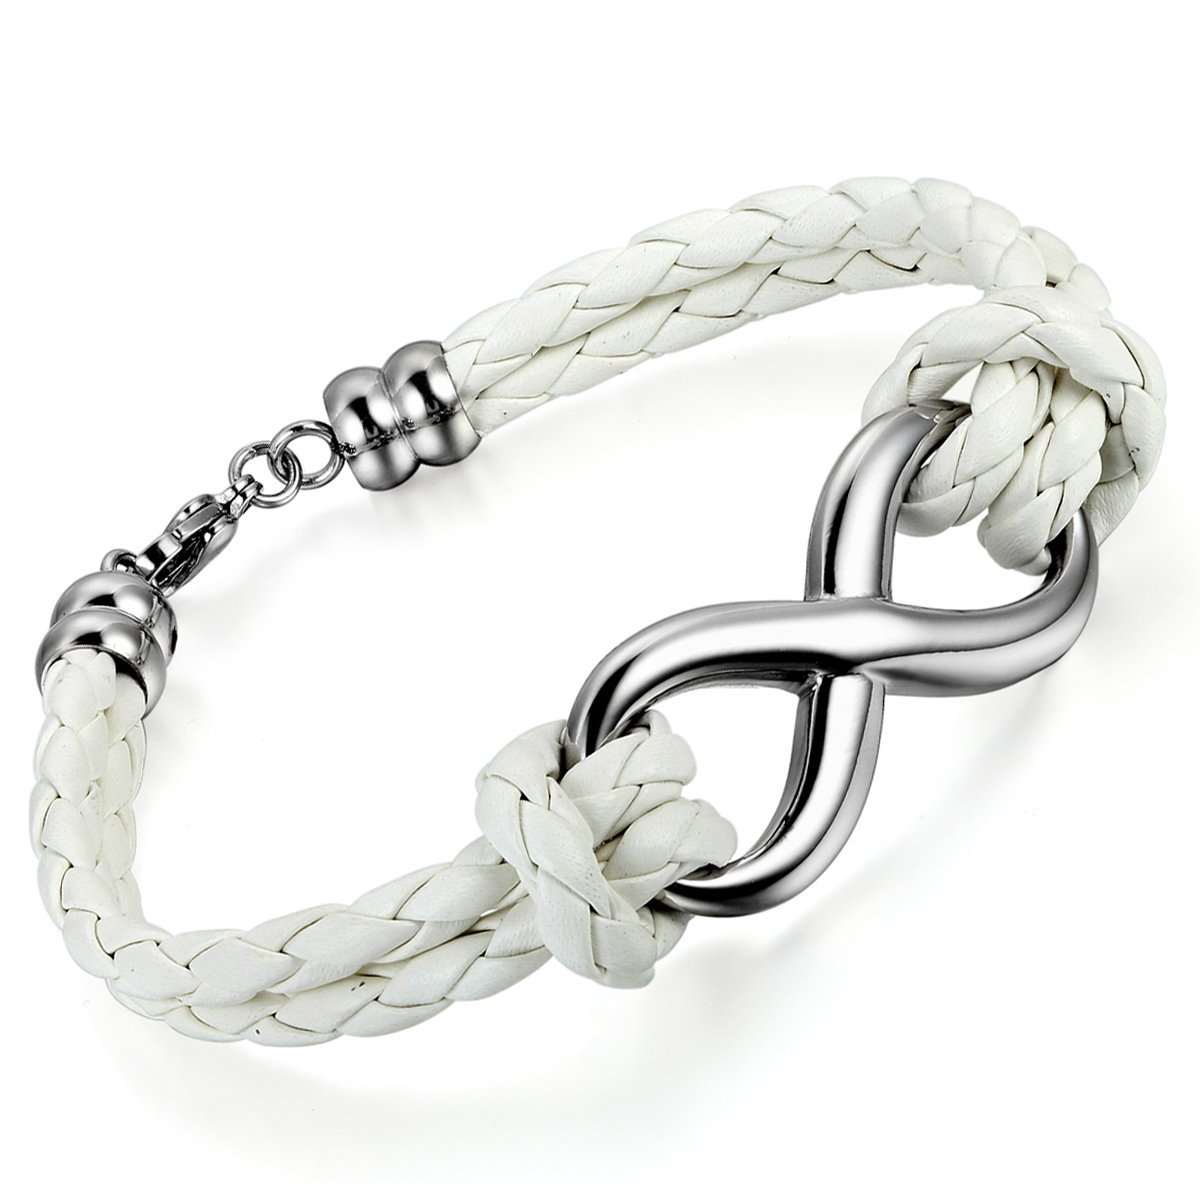 Cupimatch Love Infinity Symbol Braided Leather Bracelet White Wristband Bangle for Men Women